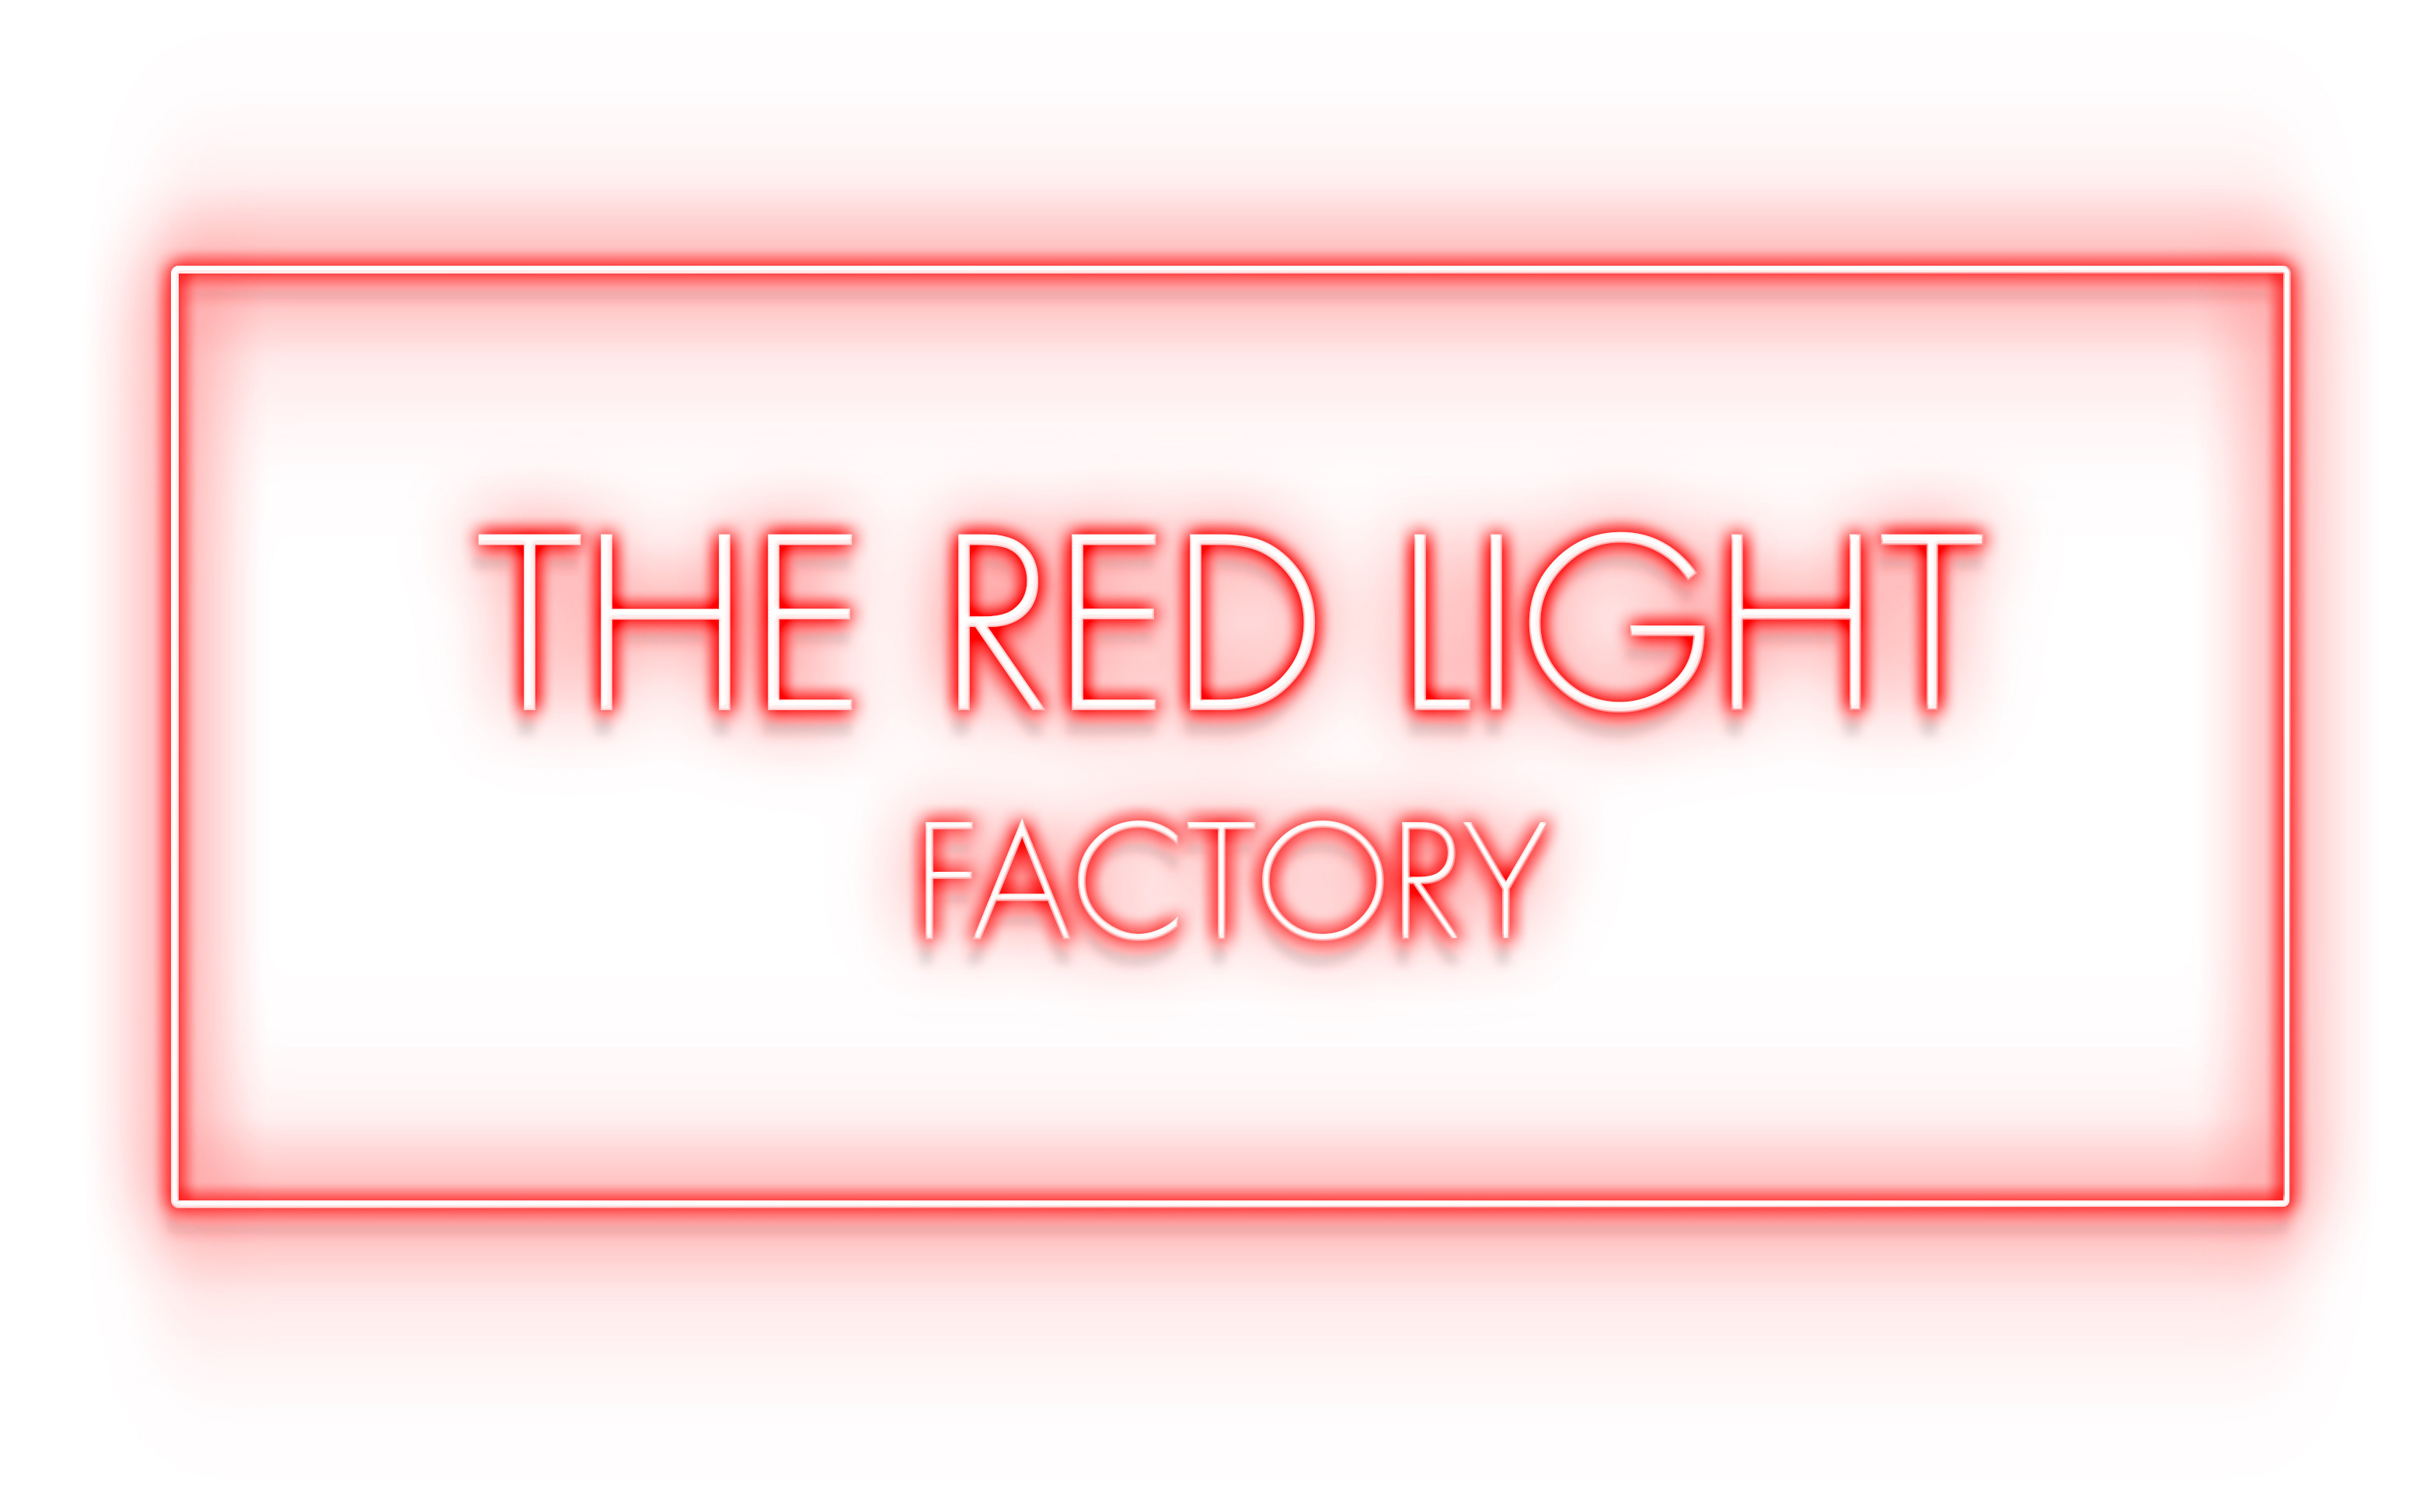 The Red Light Factory